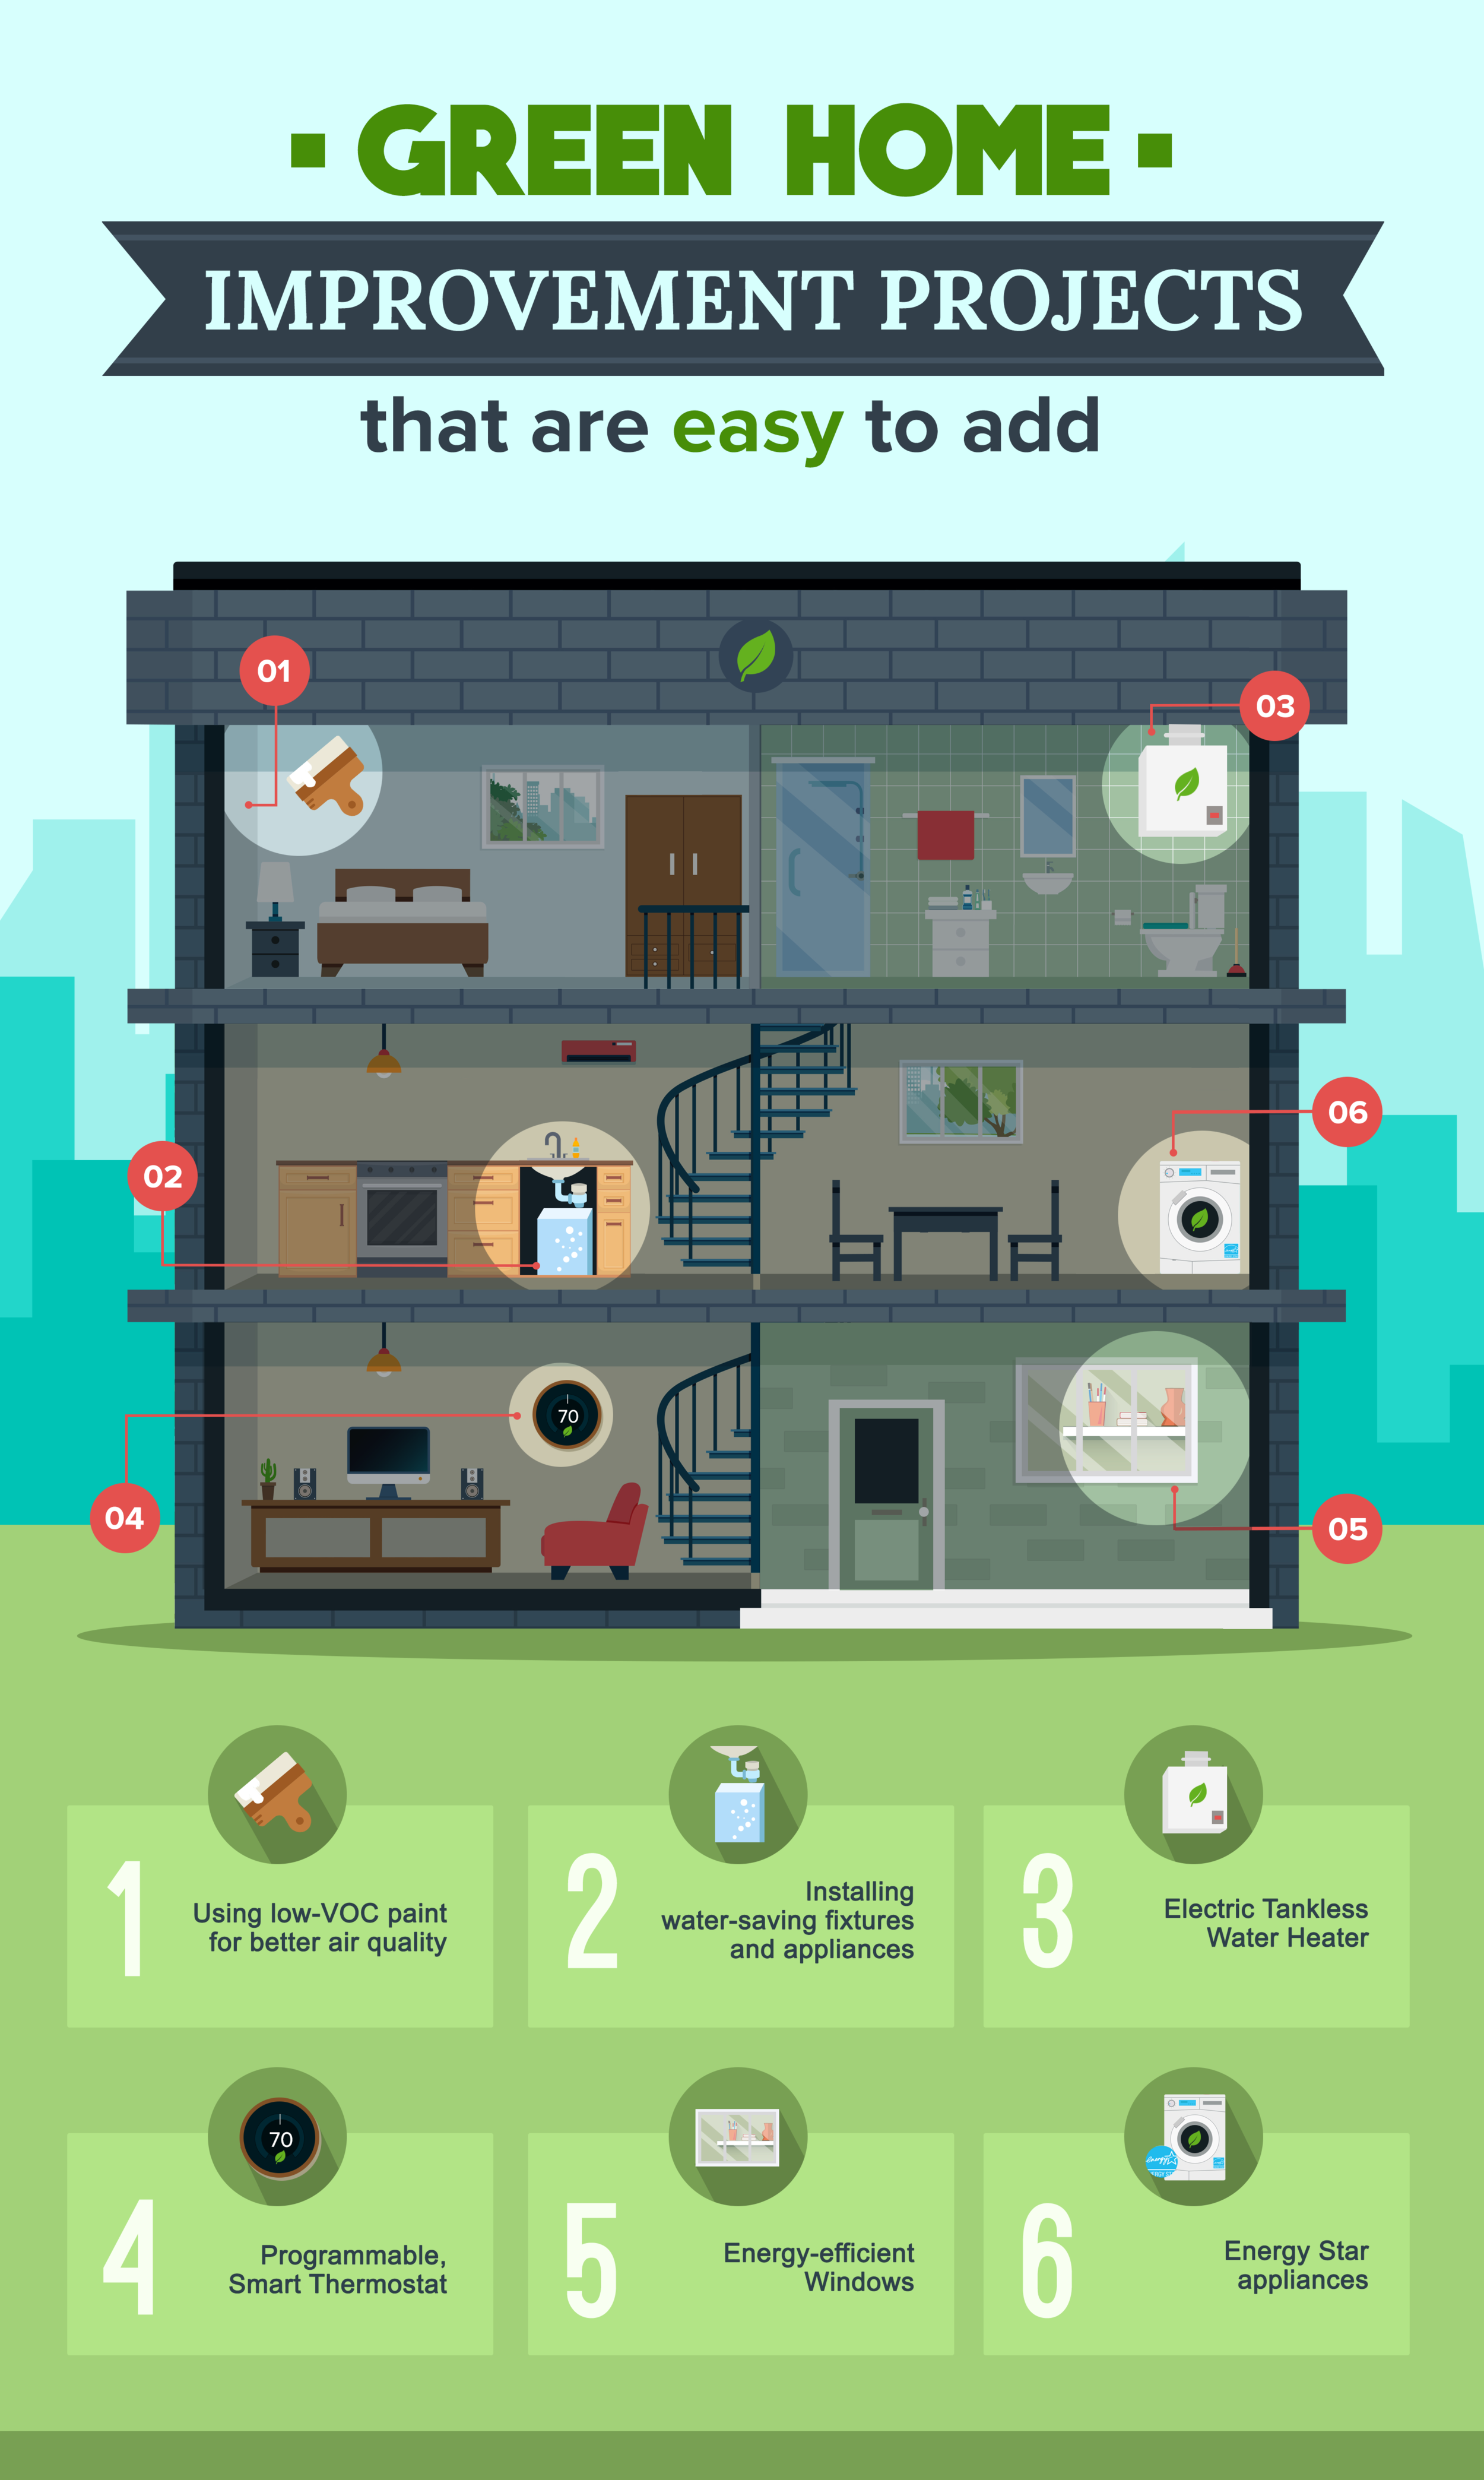 Green Home Improvement Options You Can Add To Your Home - title.png